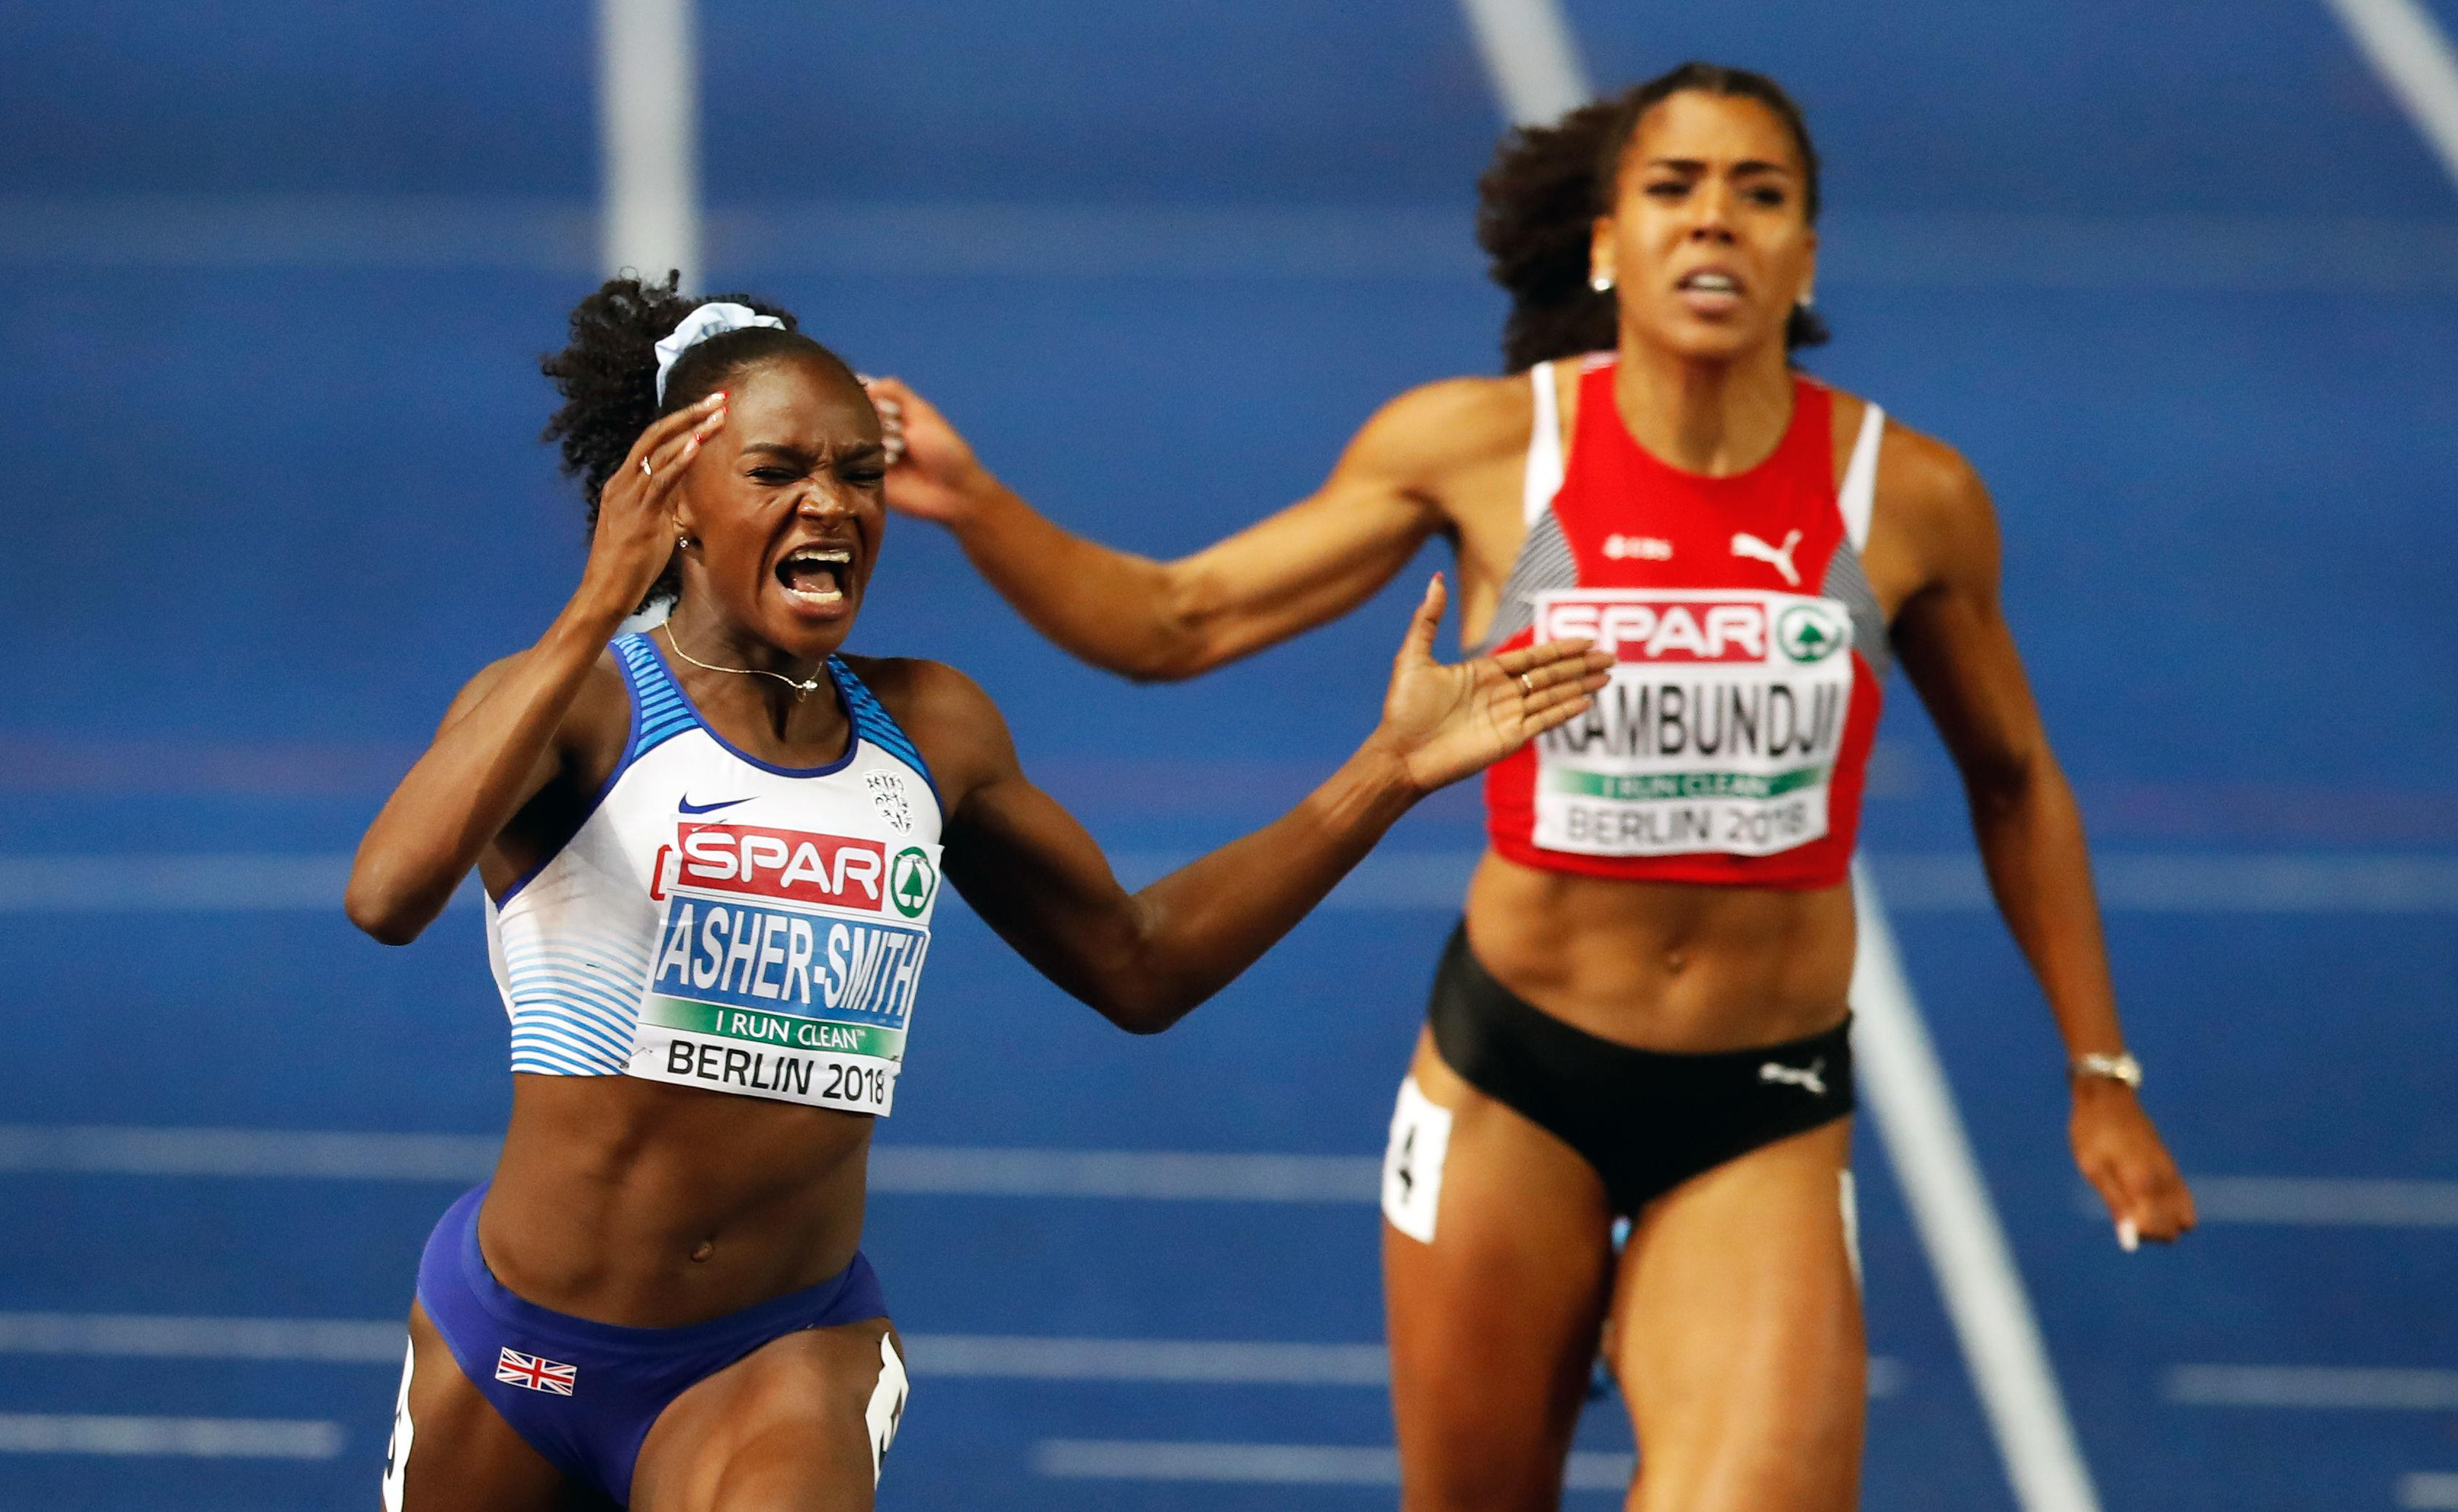 Asher-Smith was overjoyed at beating her personal best and claiming the European title in Berlin